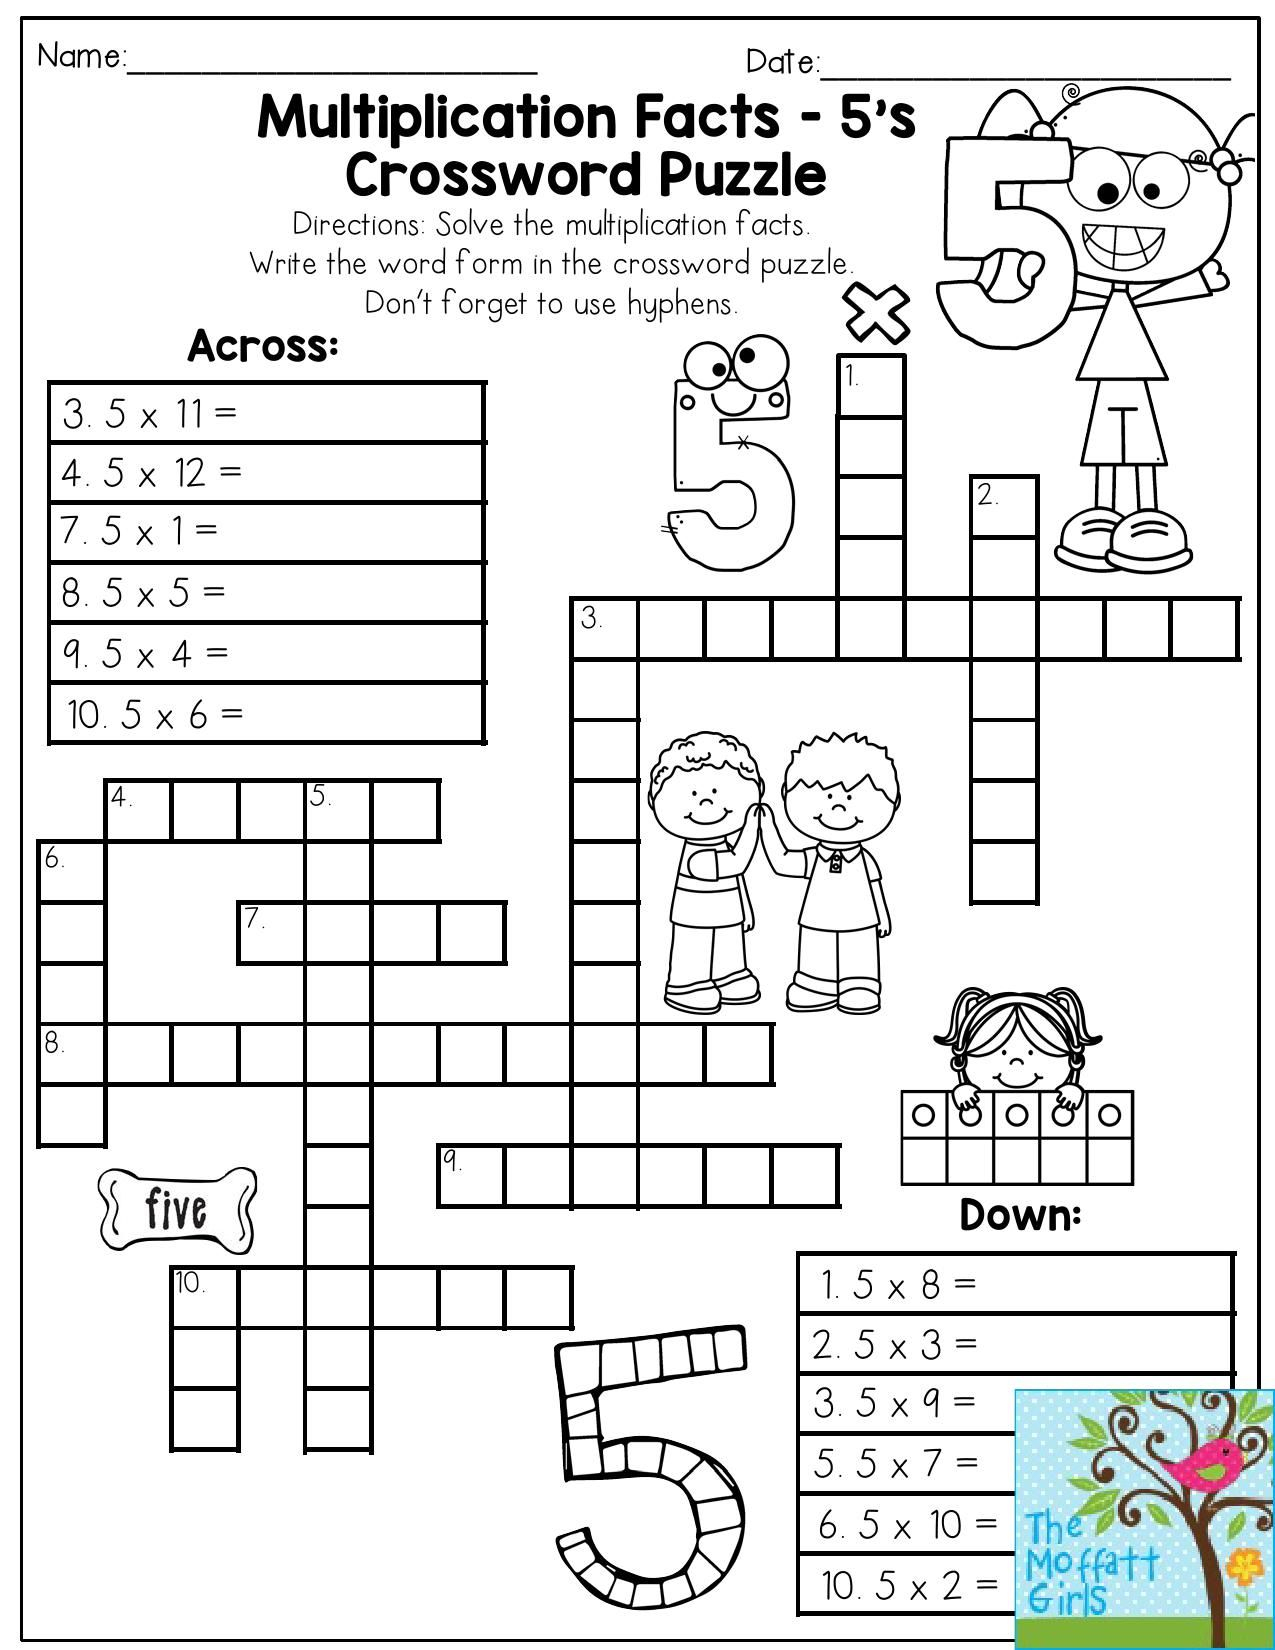 Multiplication Facts Crossword Puzzle- Third Grade Students Love - Printable Crossword Puzzles For Grade 2